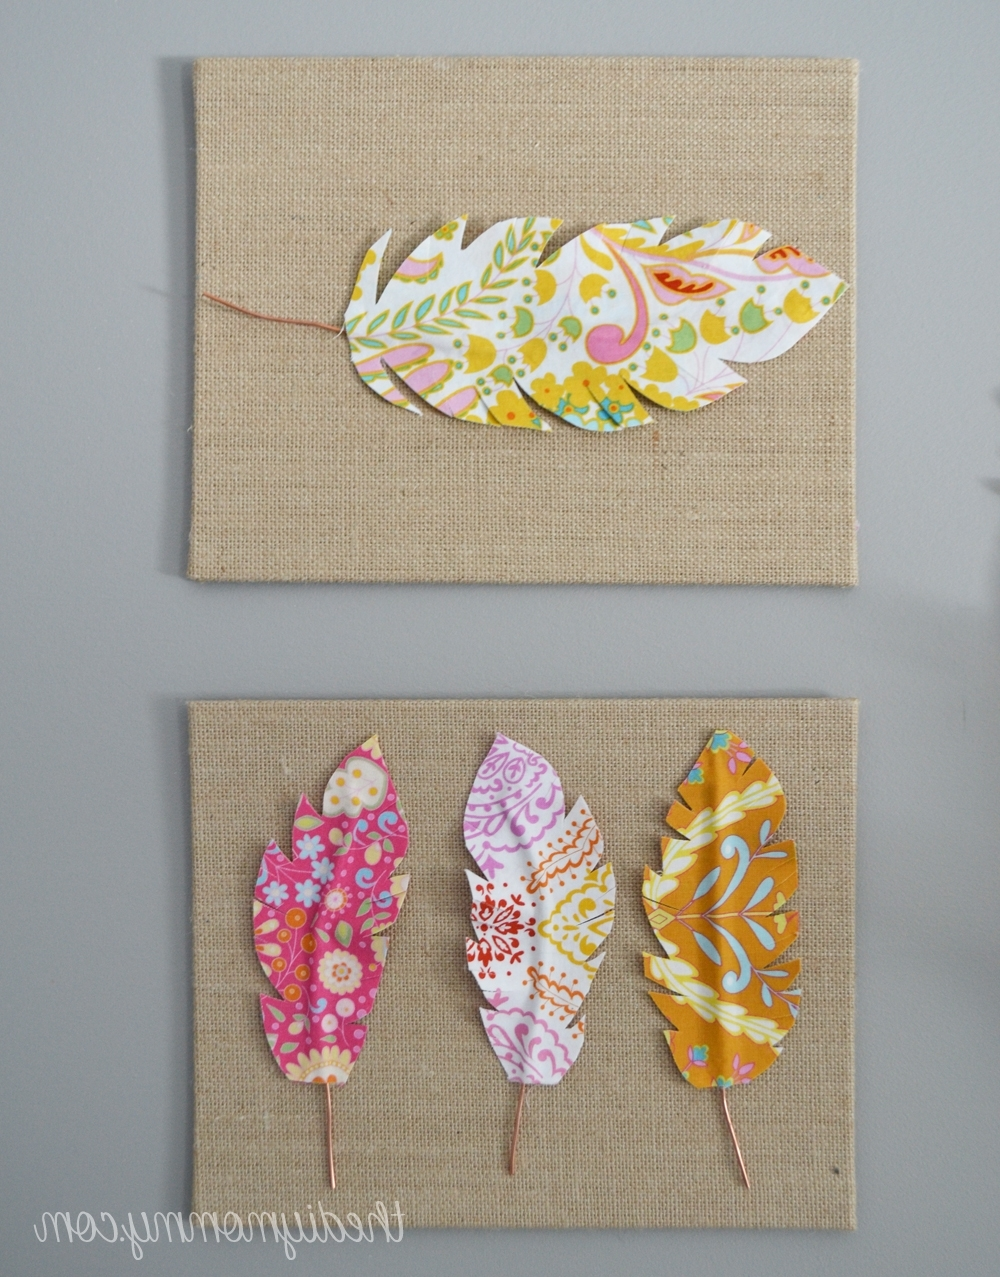 Fabric Covered Wall Art Within Widely Used Make Fabric Feather Wall Art (View 8 of 15)